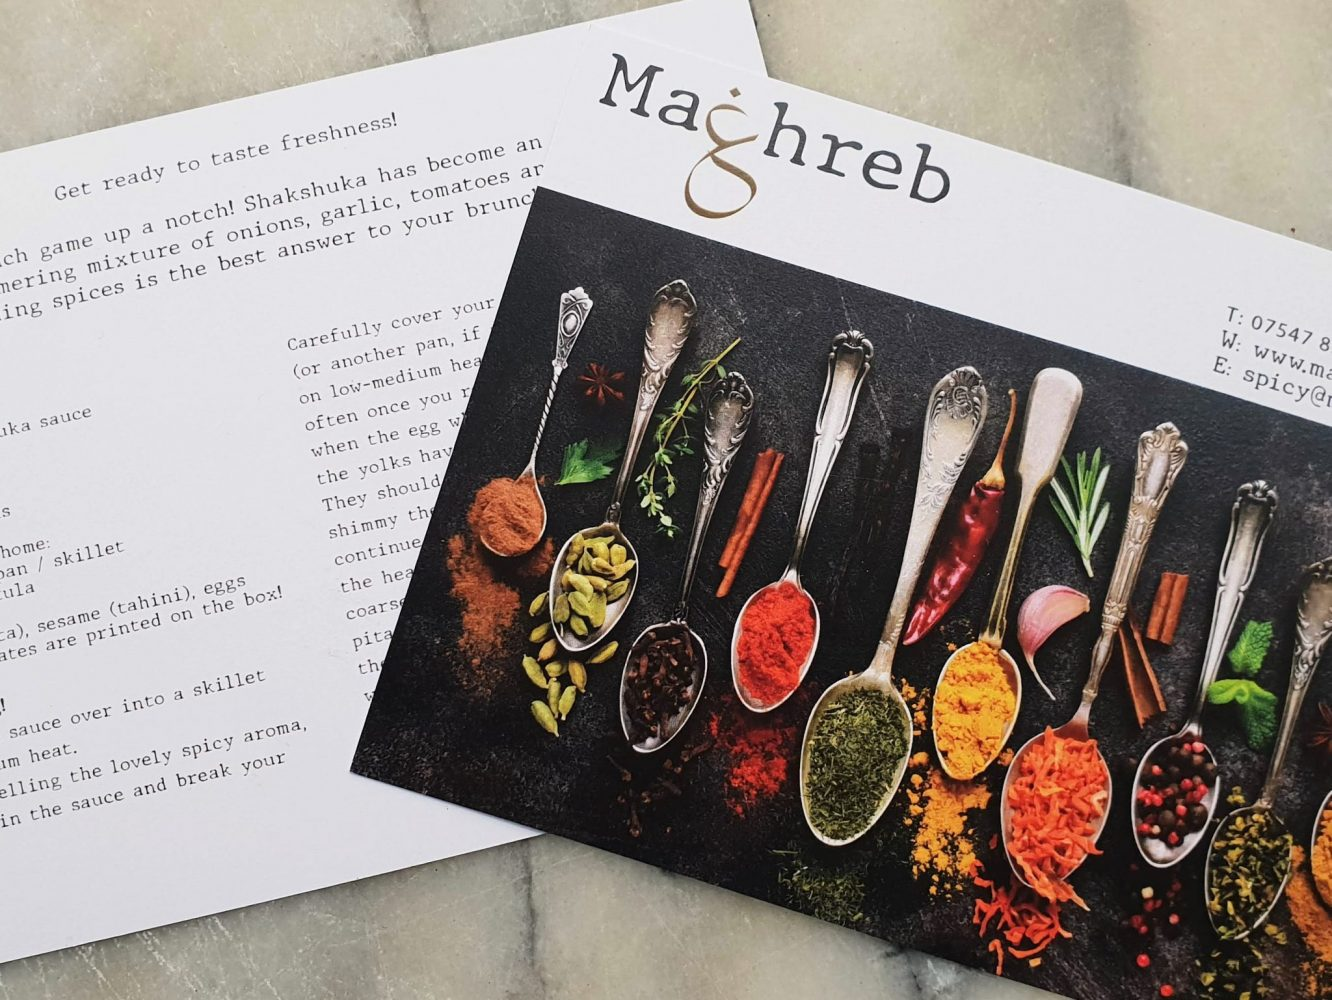 Maghreb recipe card